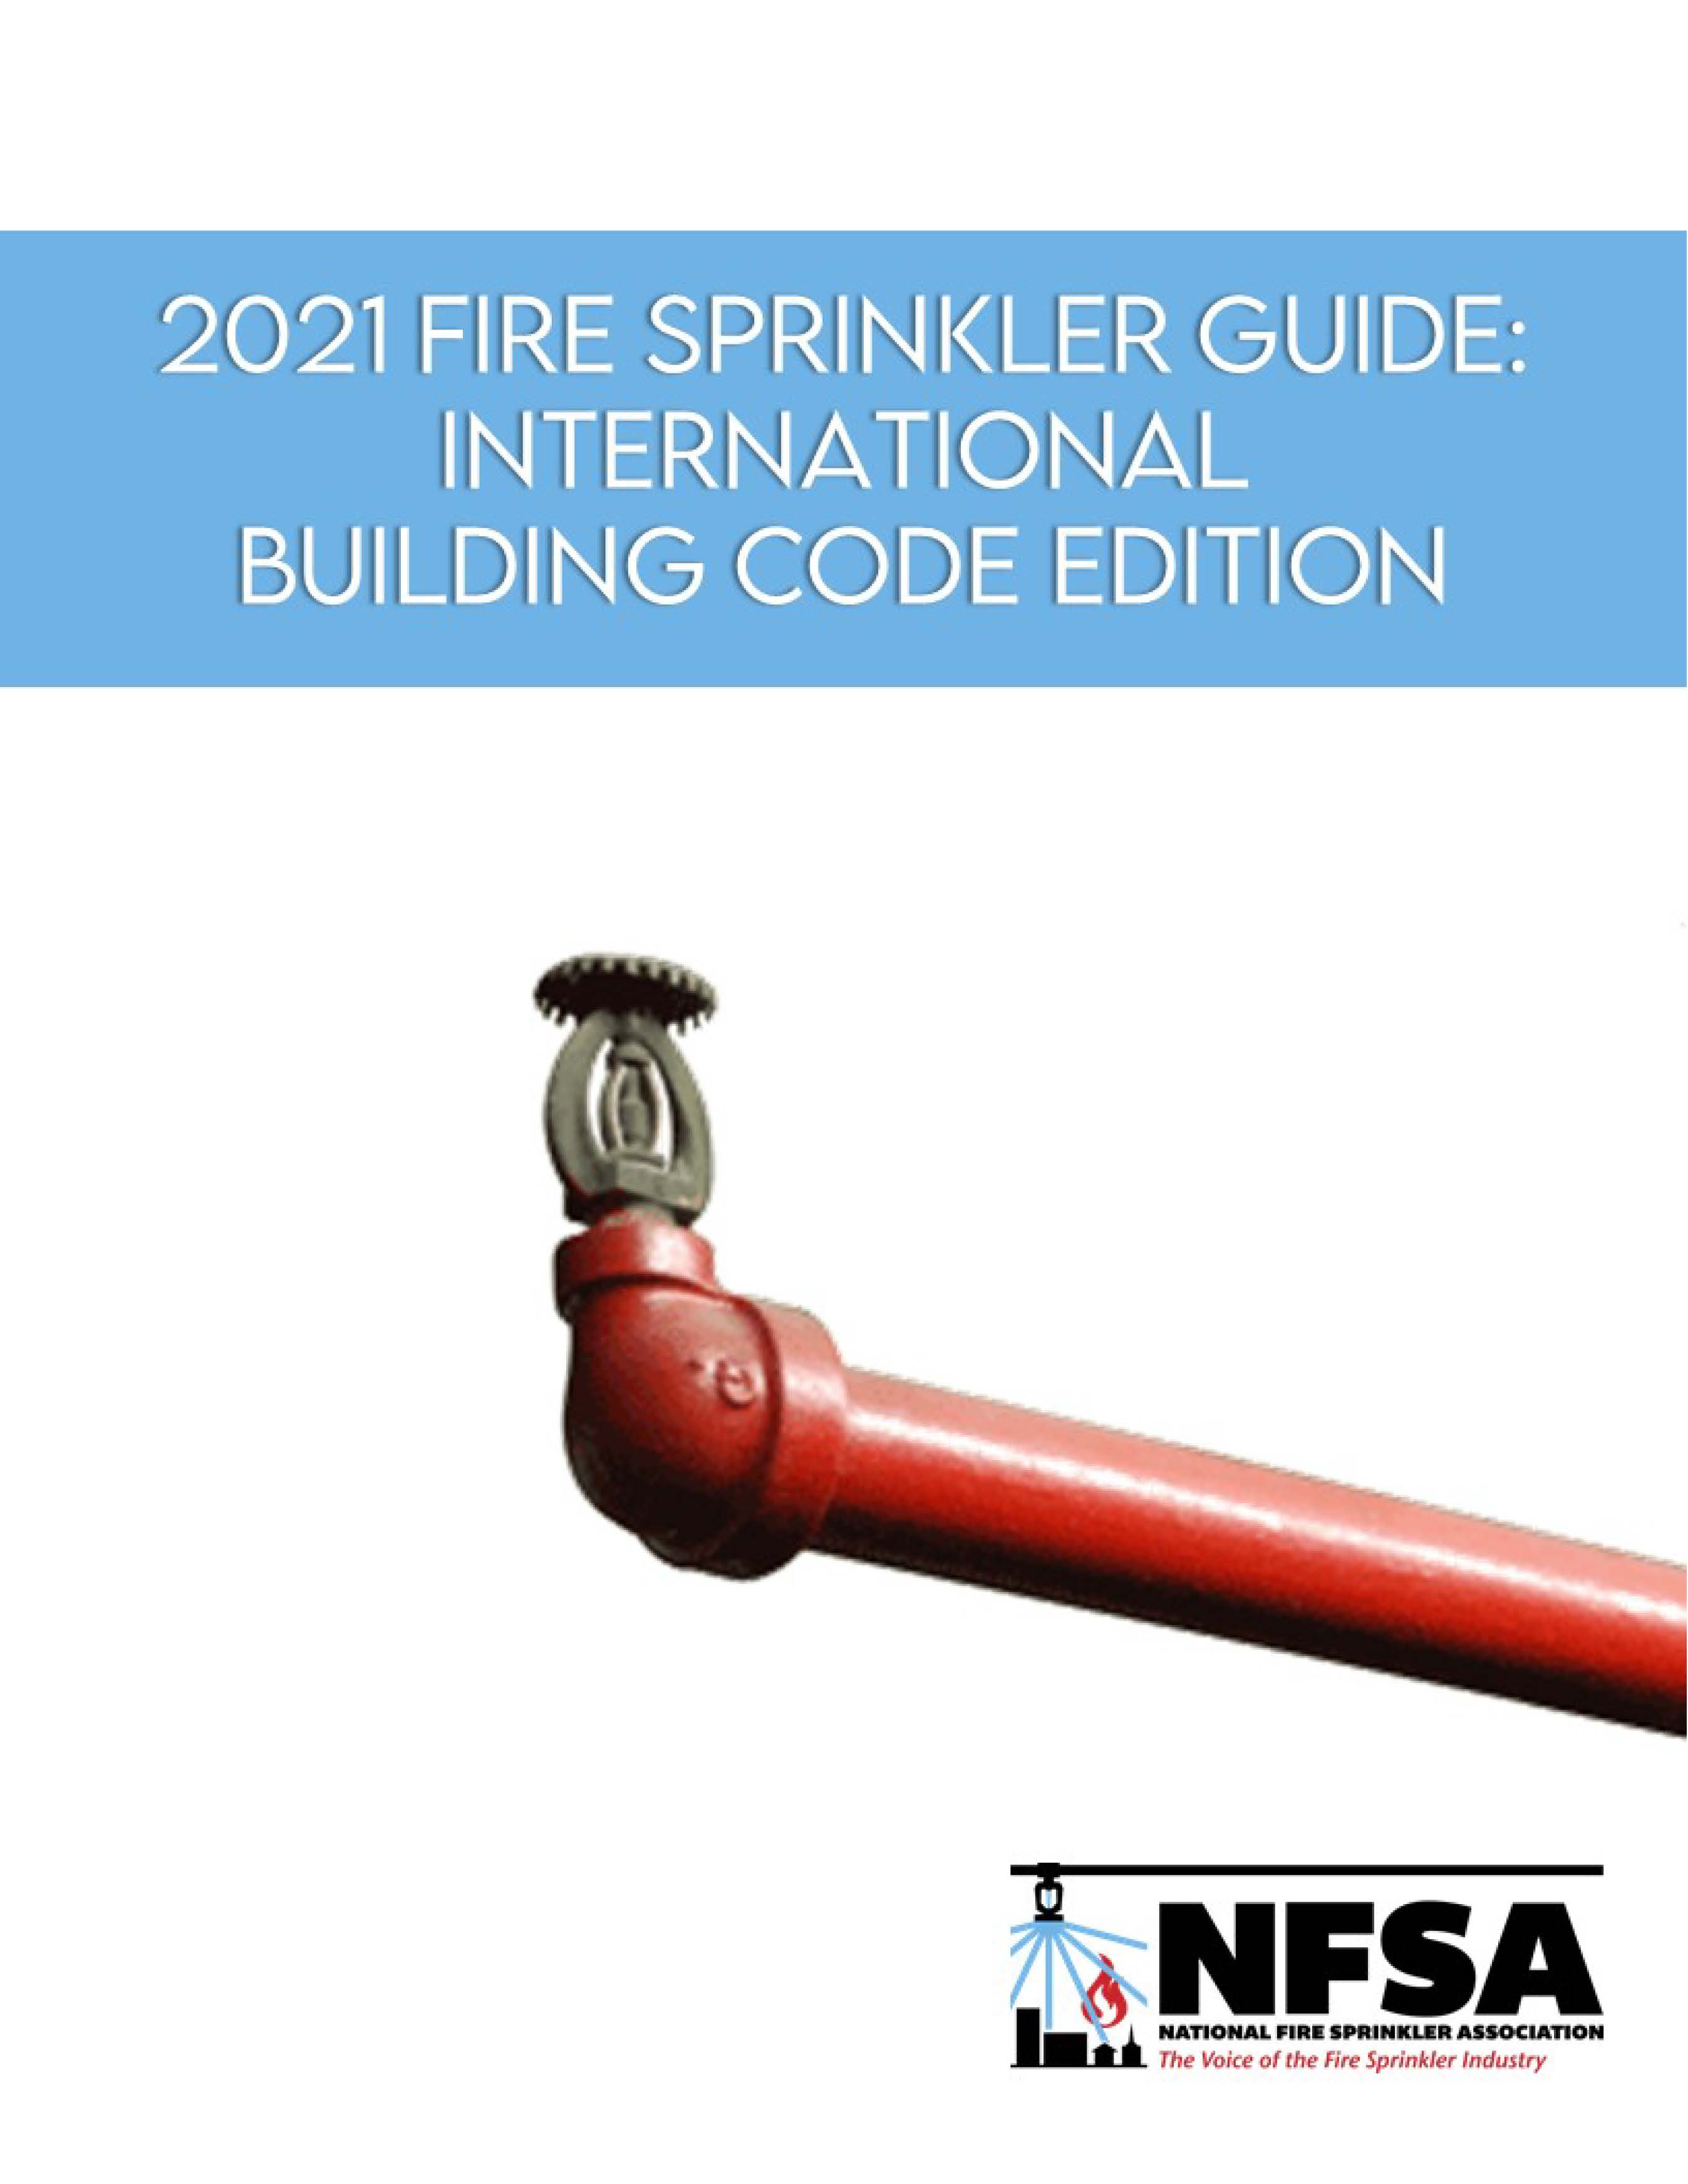 NFSA Guide, Automatic Sprinkler Systems (IBC2021)